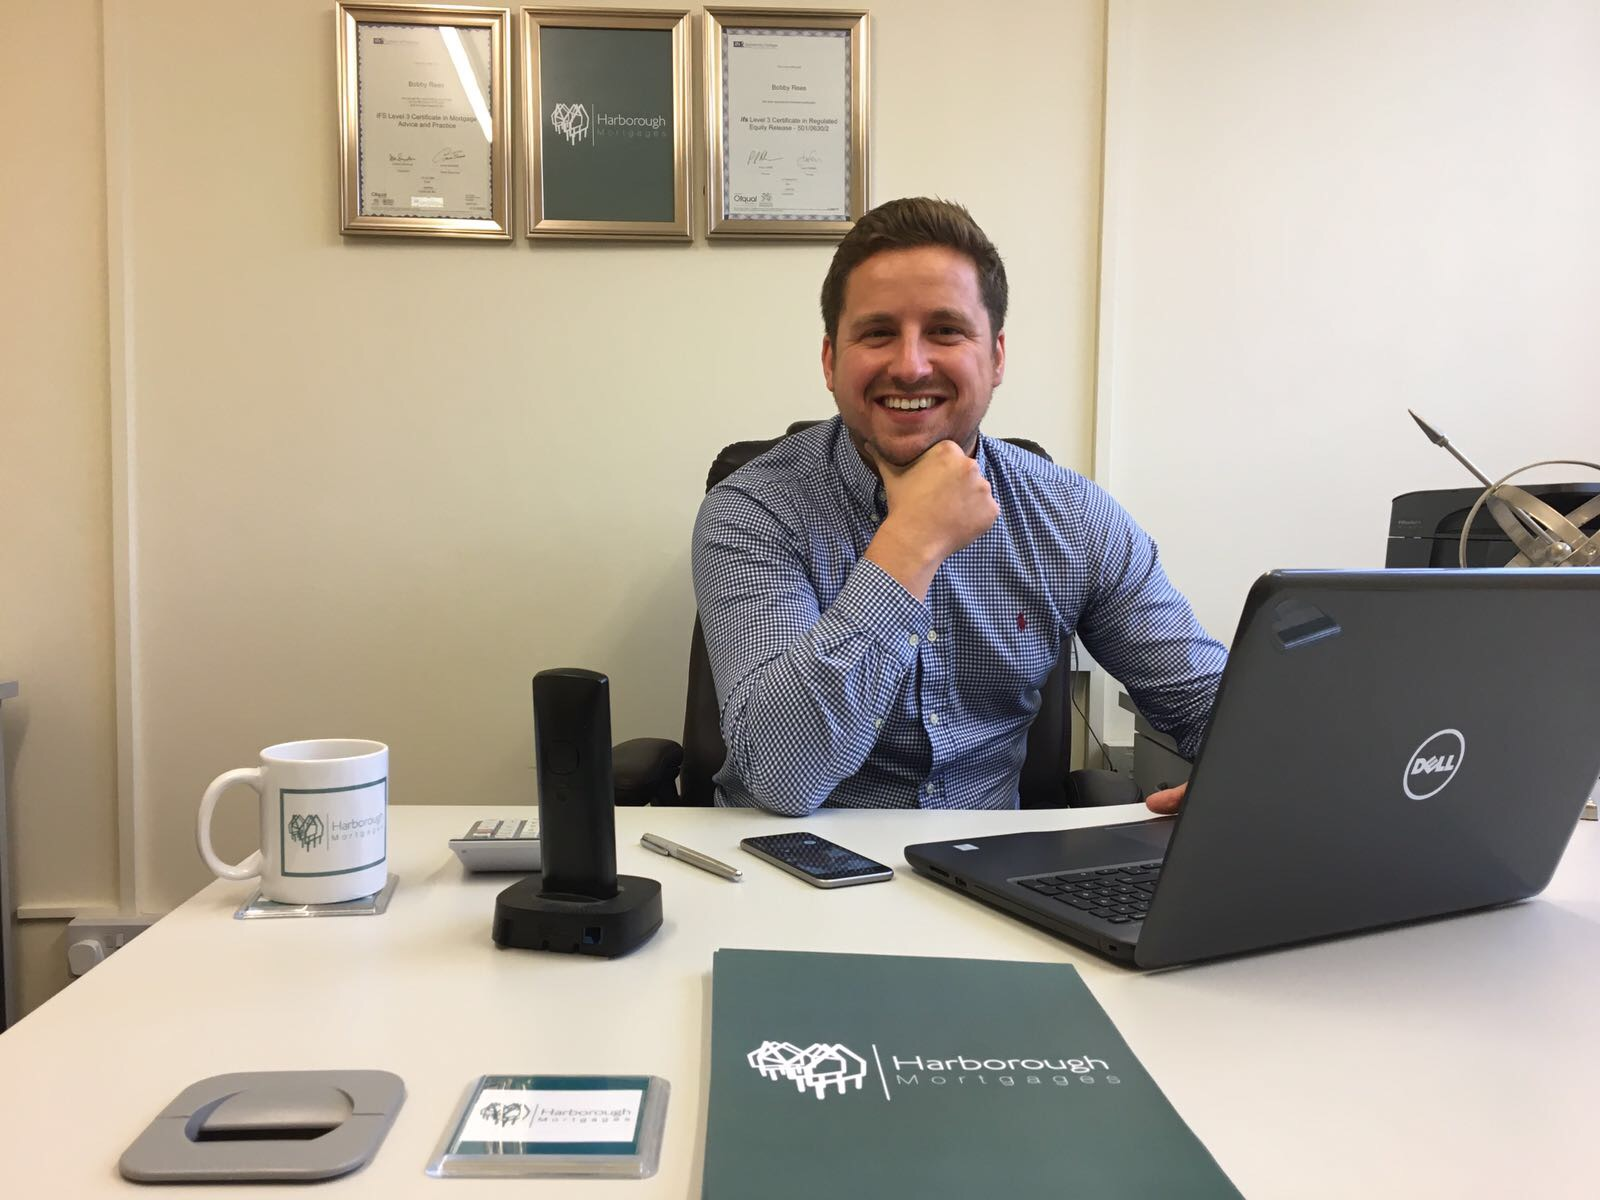 OUR AIM FOR YOU - Welcome to Harborough Mortgages. Our aim is to offer a customer focused and highly efficient process to obtain financial advice.